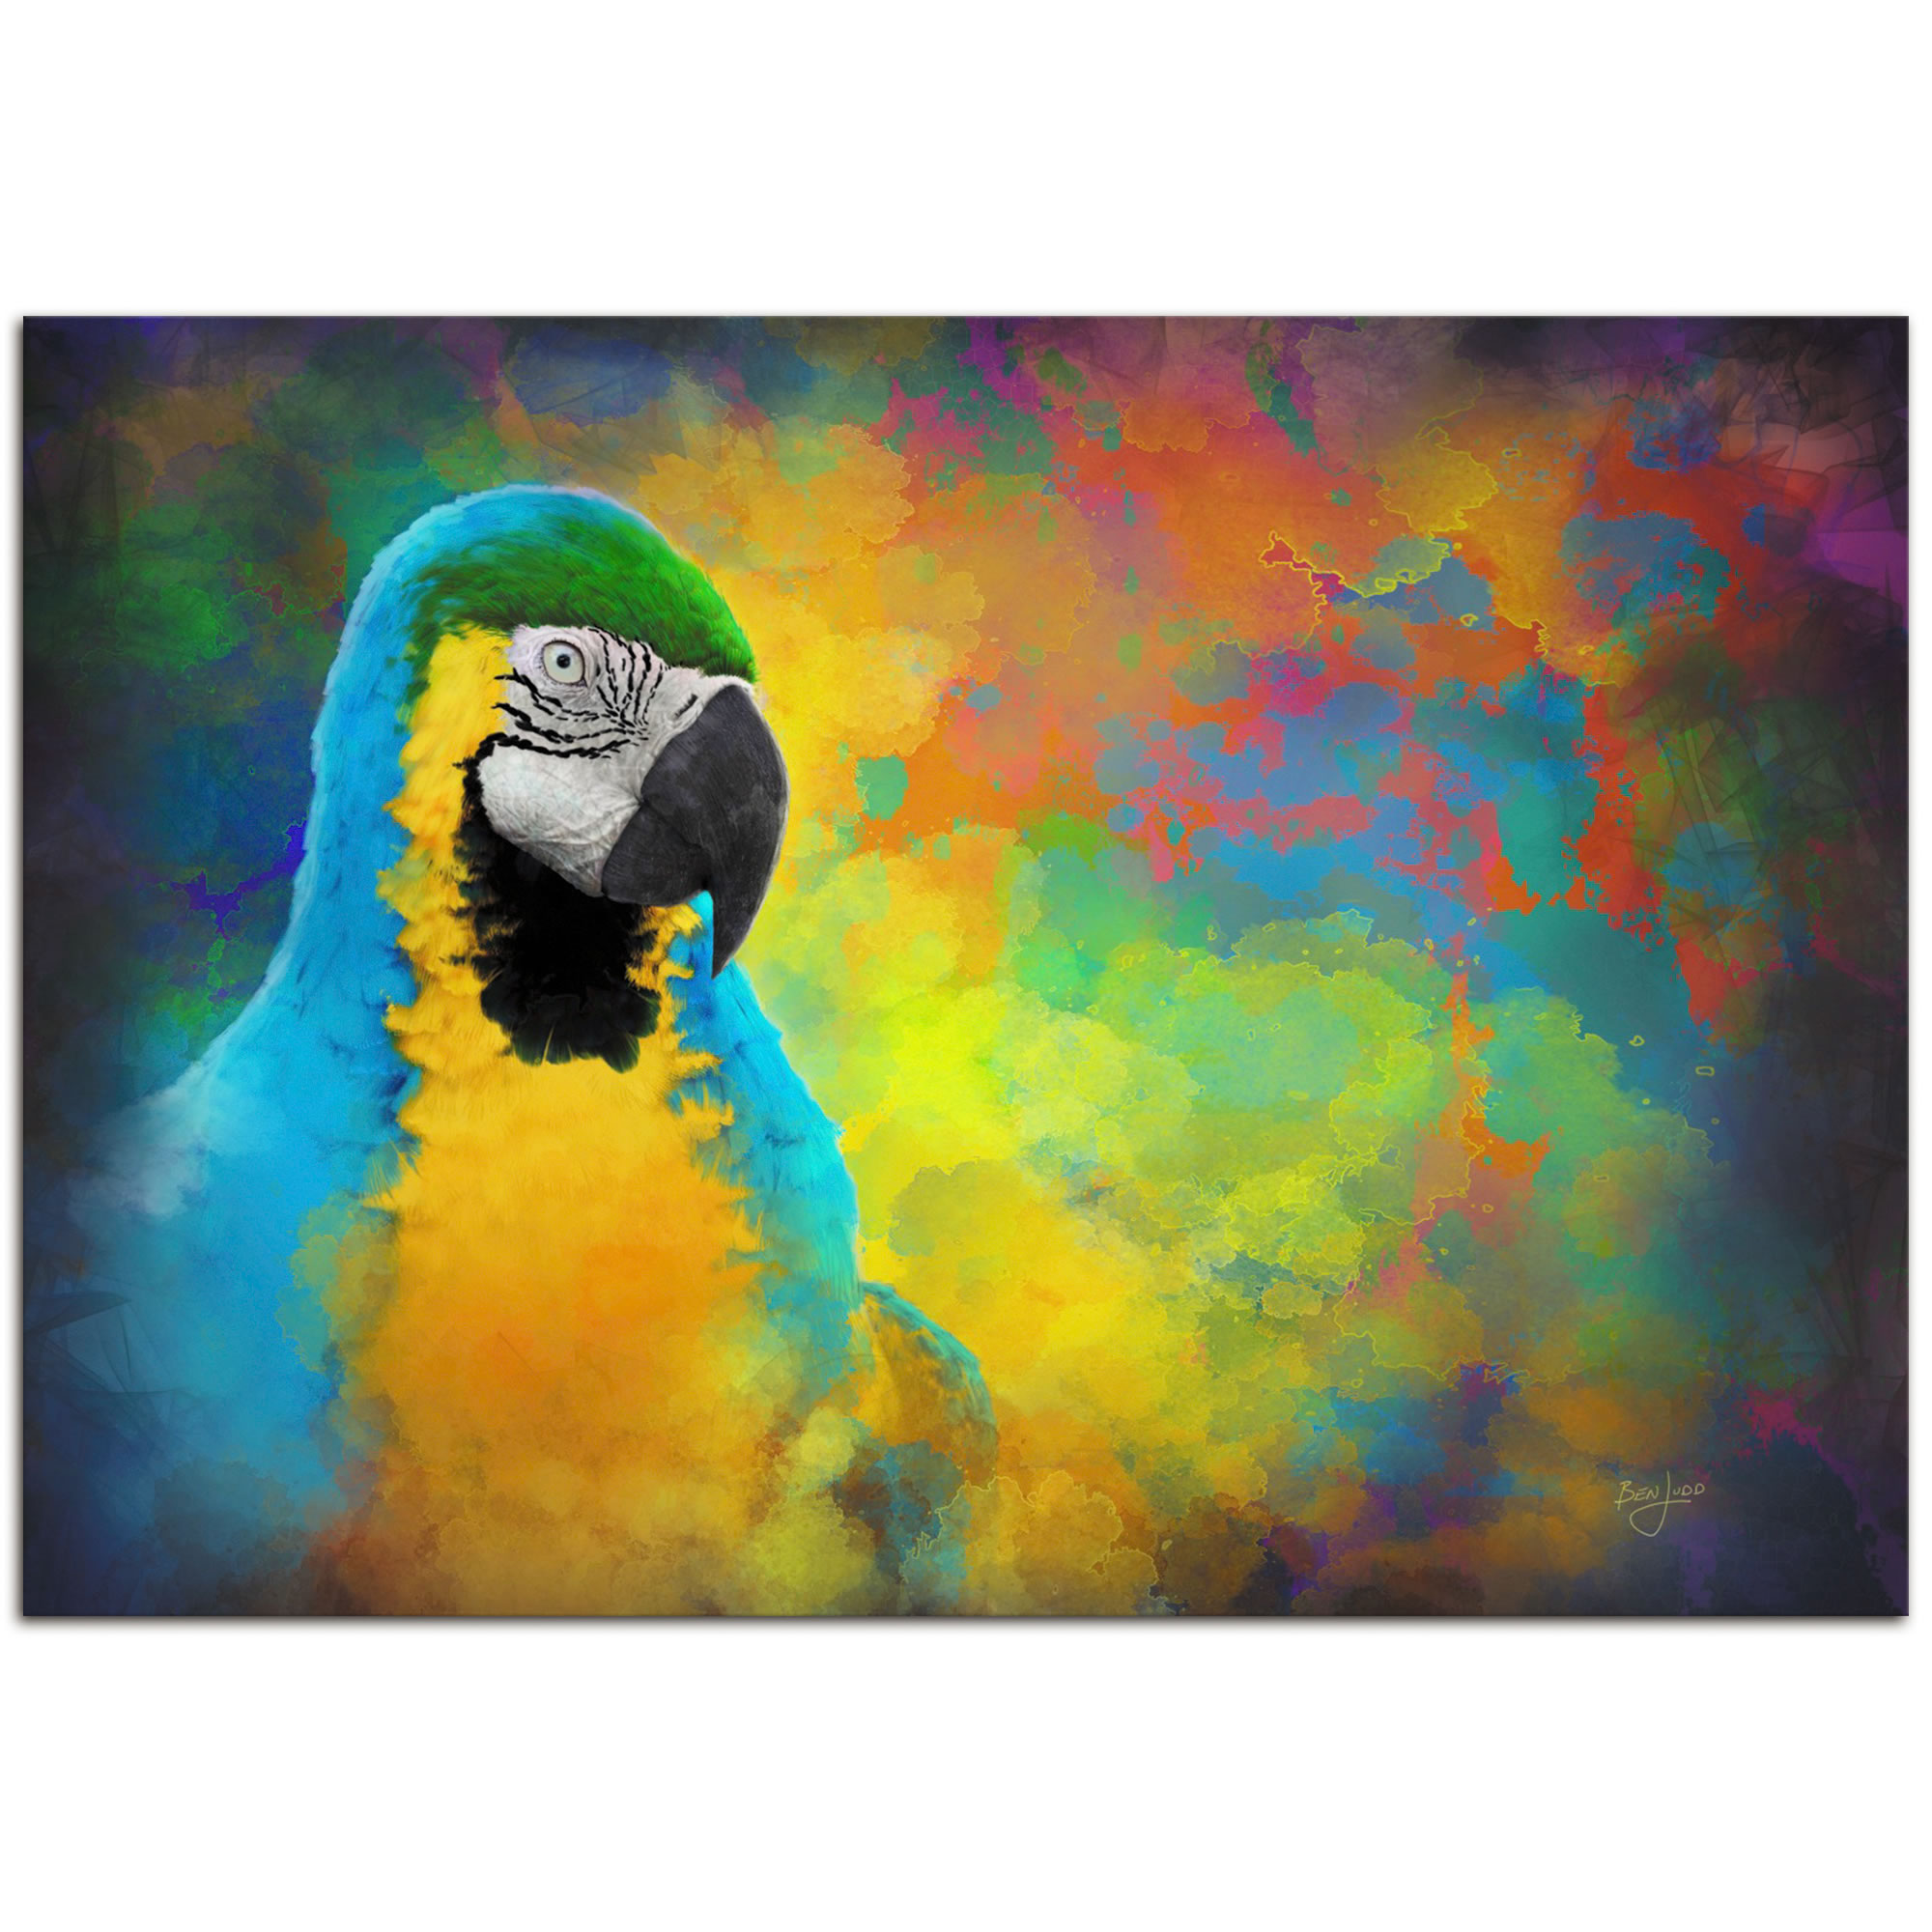 Parrot Splotch - Contemporary Rainbow Bird Art on Metal